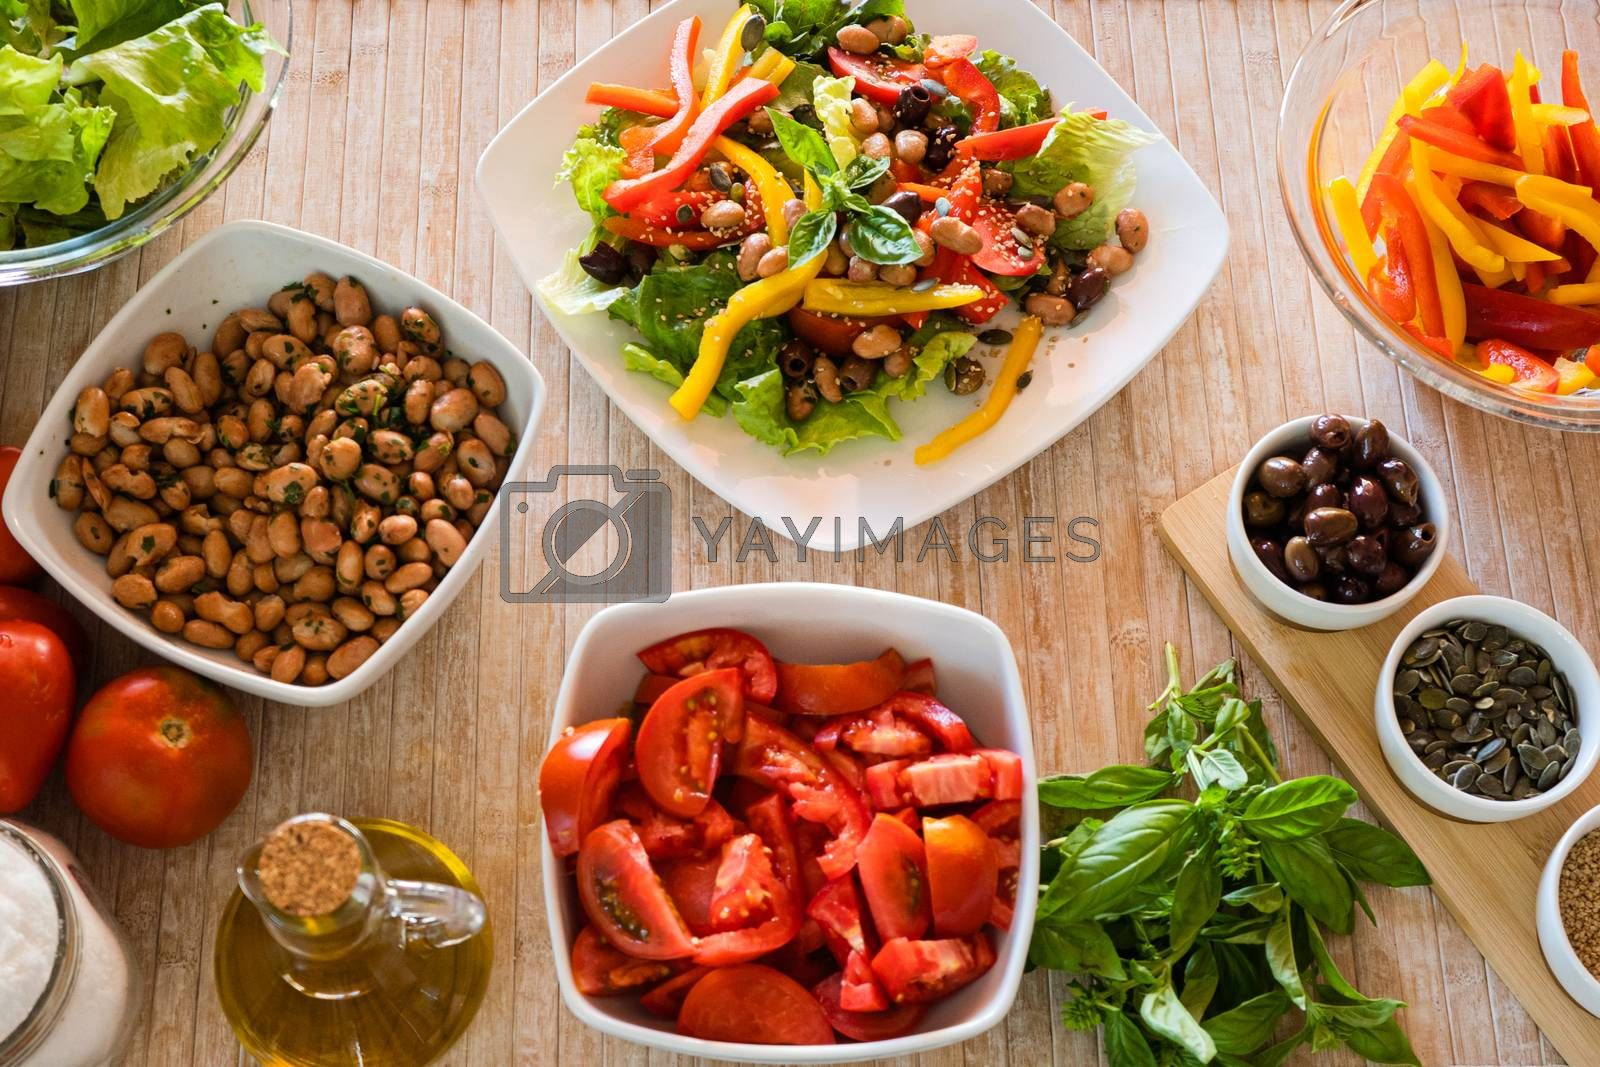 Flat lay top view of a compound fresh salad plate with vegetable ingredients all around it on a light wooden table and natural sunlight - Fresh healthy vegan food concept